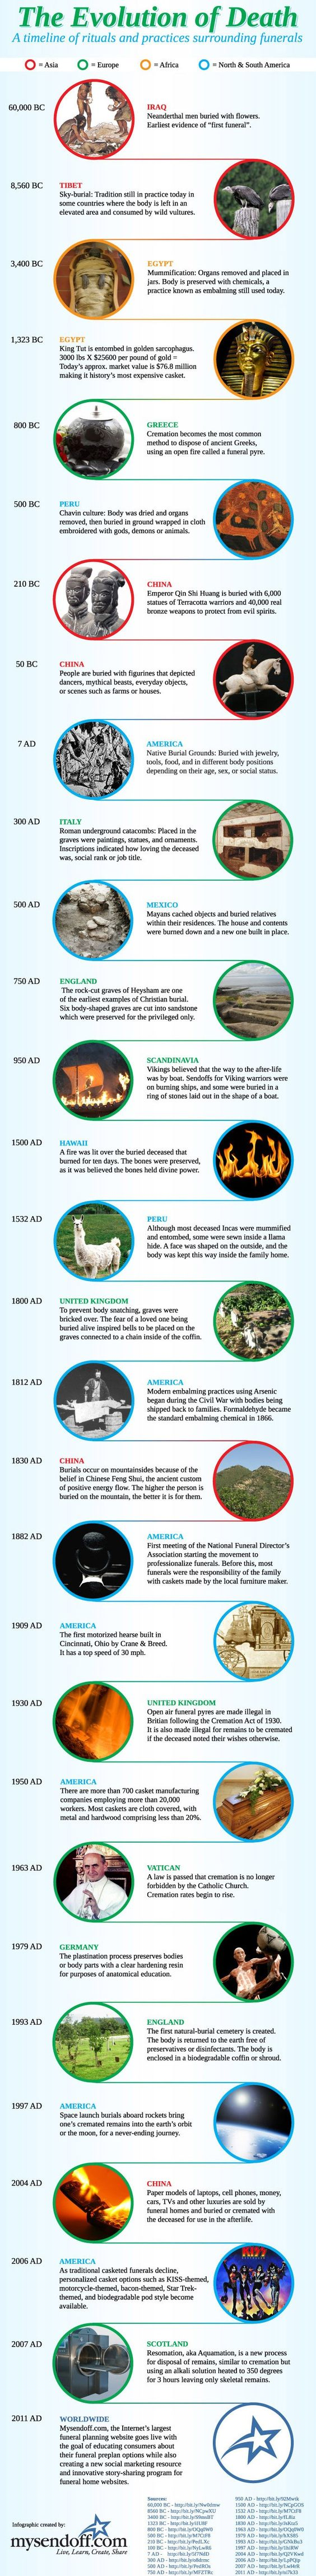 Timeline of Funerals Around the World